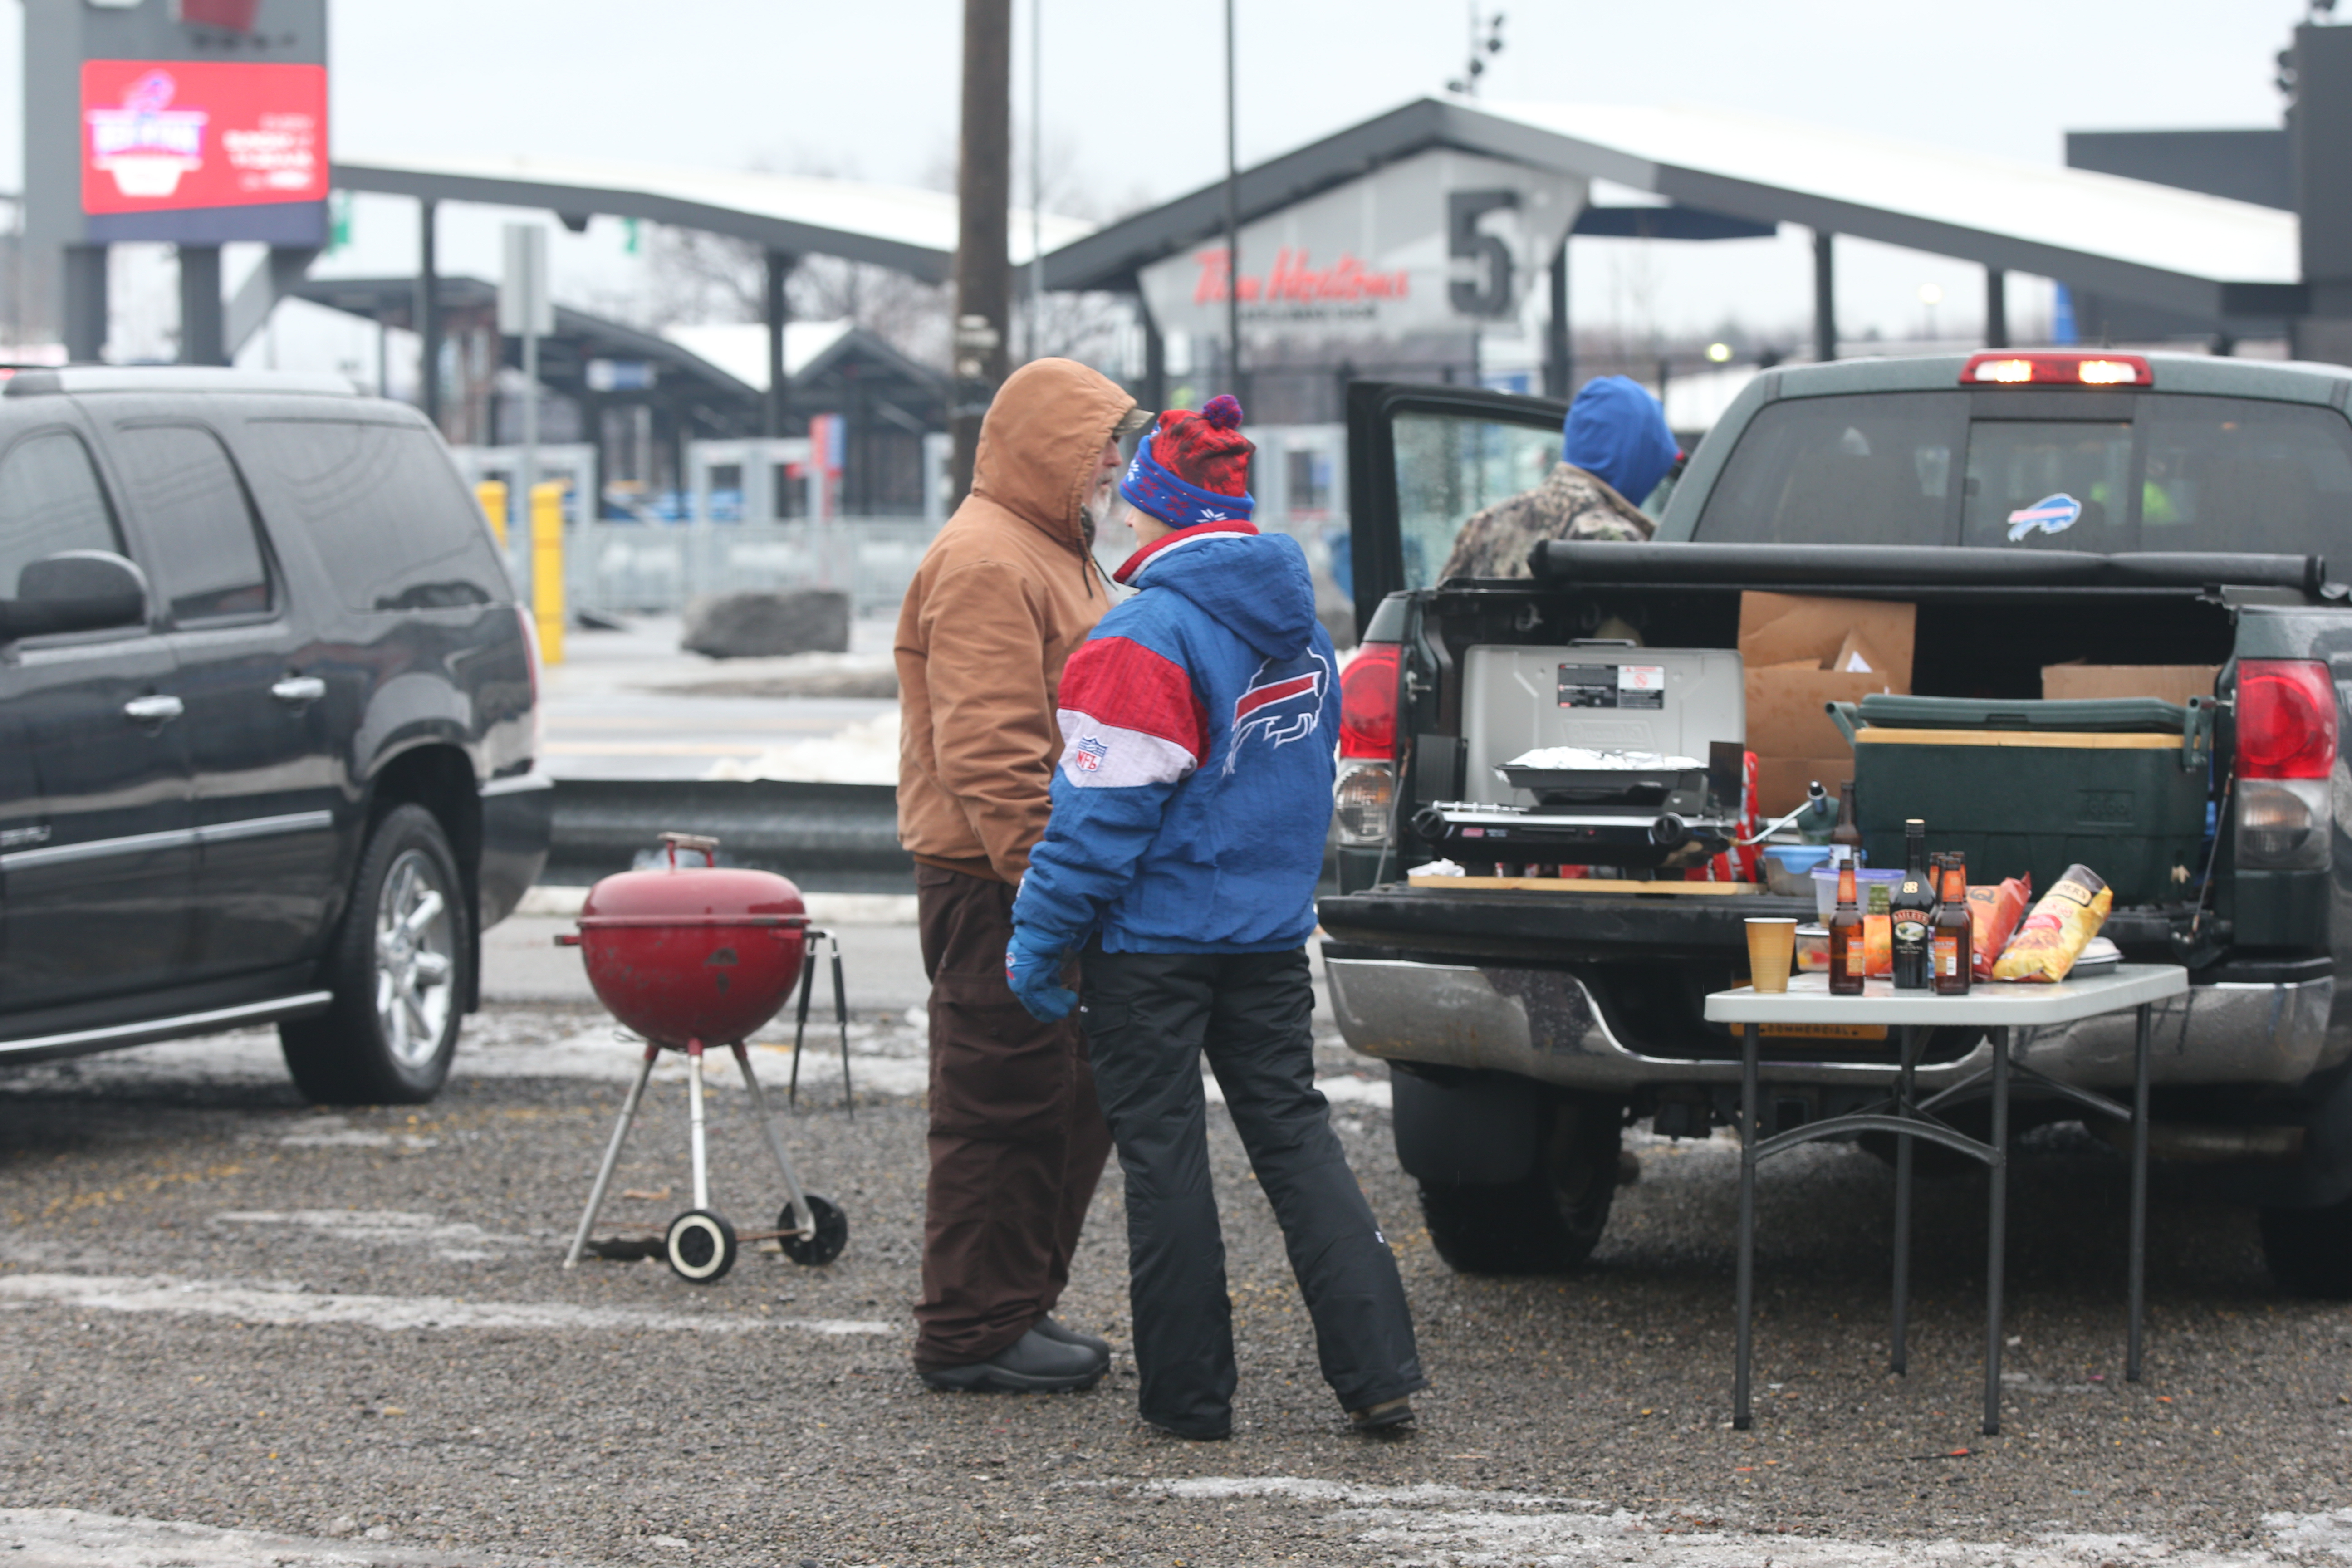 Buffalo Bills fans party in the parking lot before the game at New Era Field Orchard Park N.Y. on Saturday, Dec. 24, 2016.  (James P. McCoy/Buffalo News)